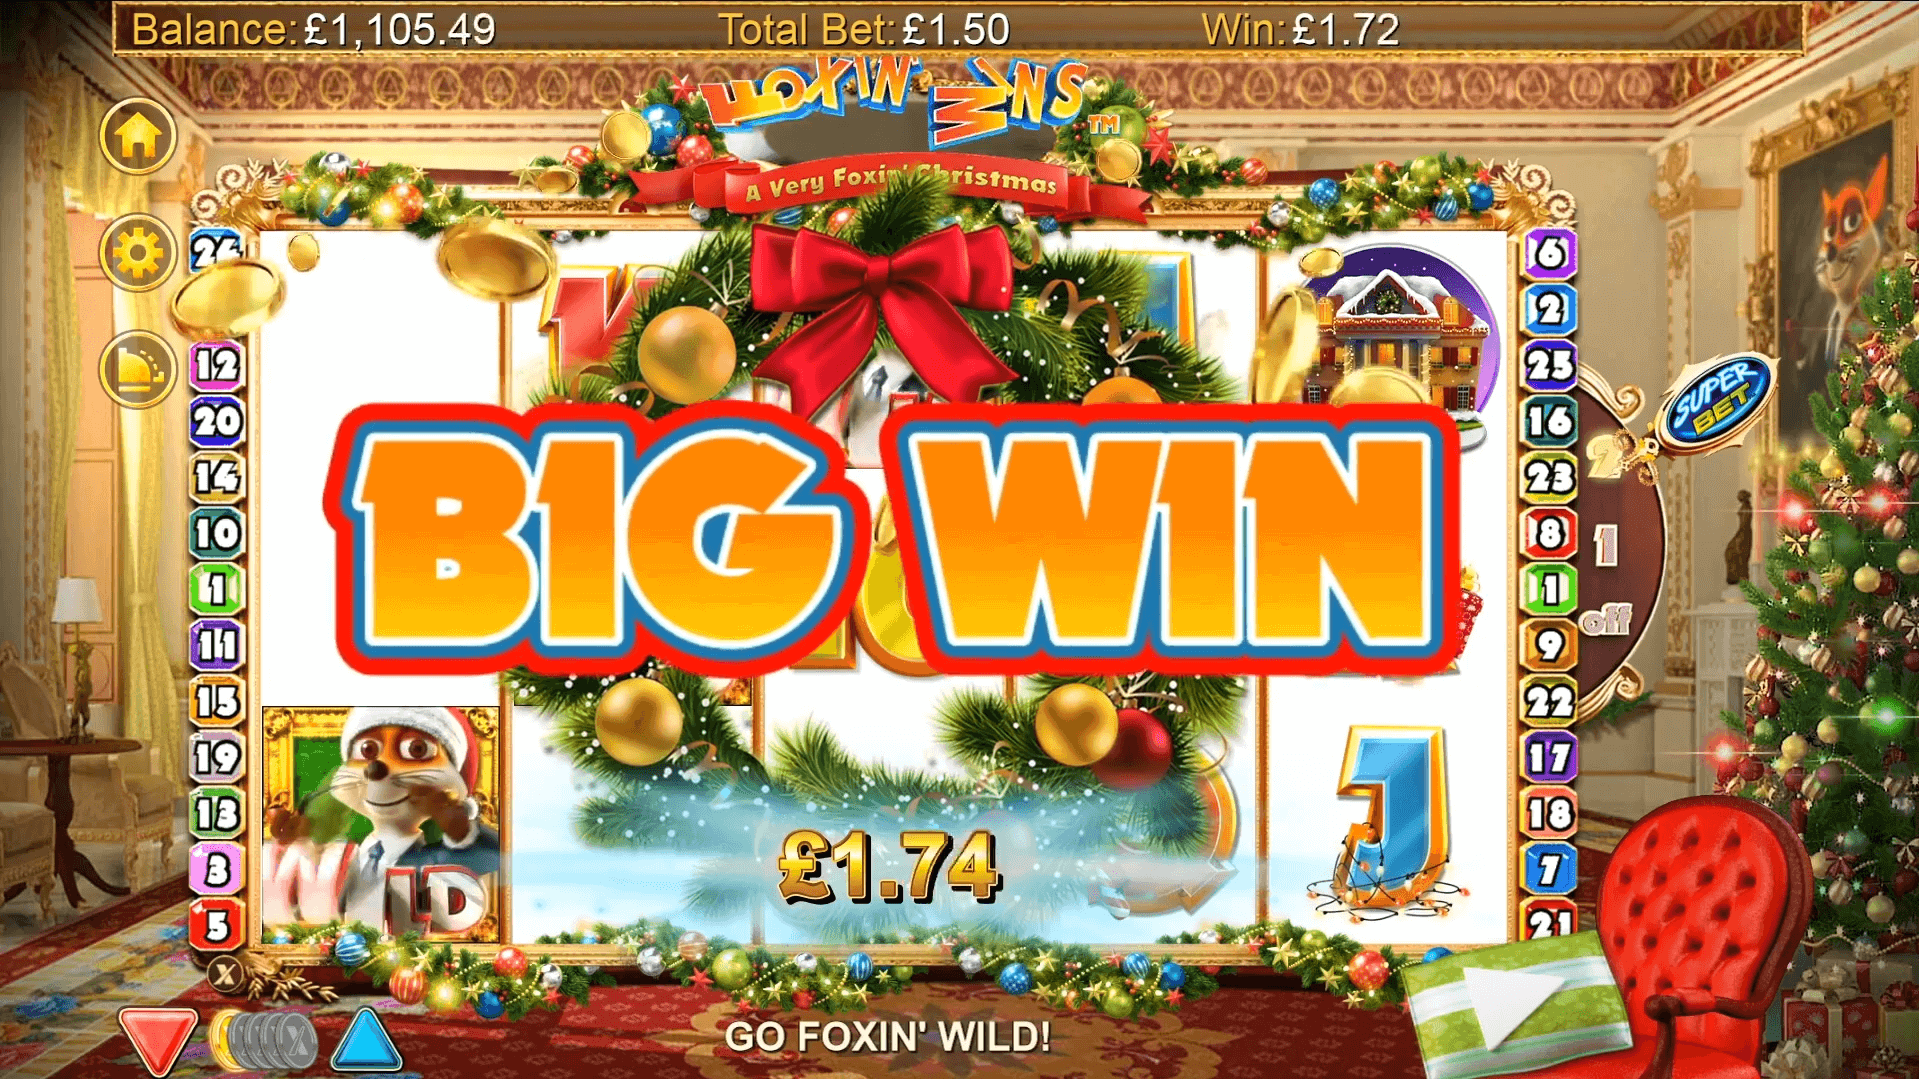 Spiele Foxin Wins - A Very Foxin Christmas - Video Slots Online